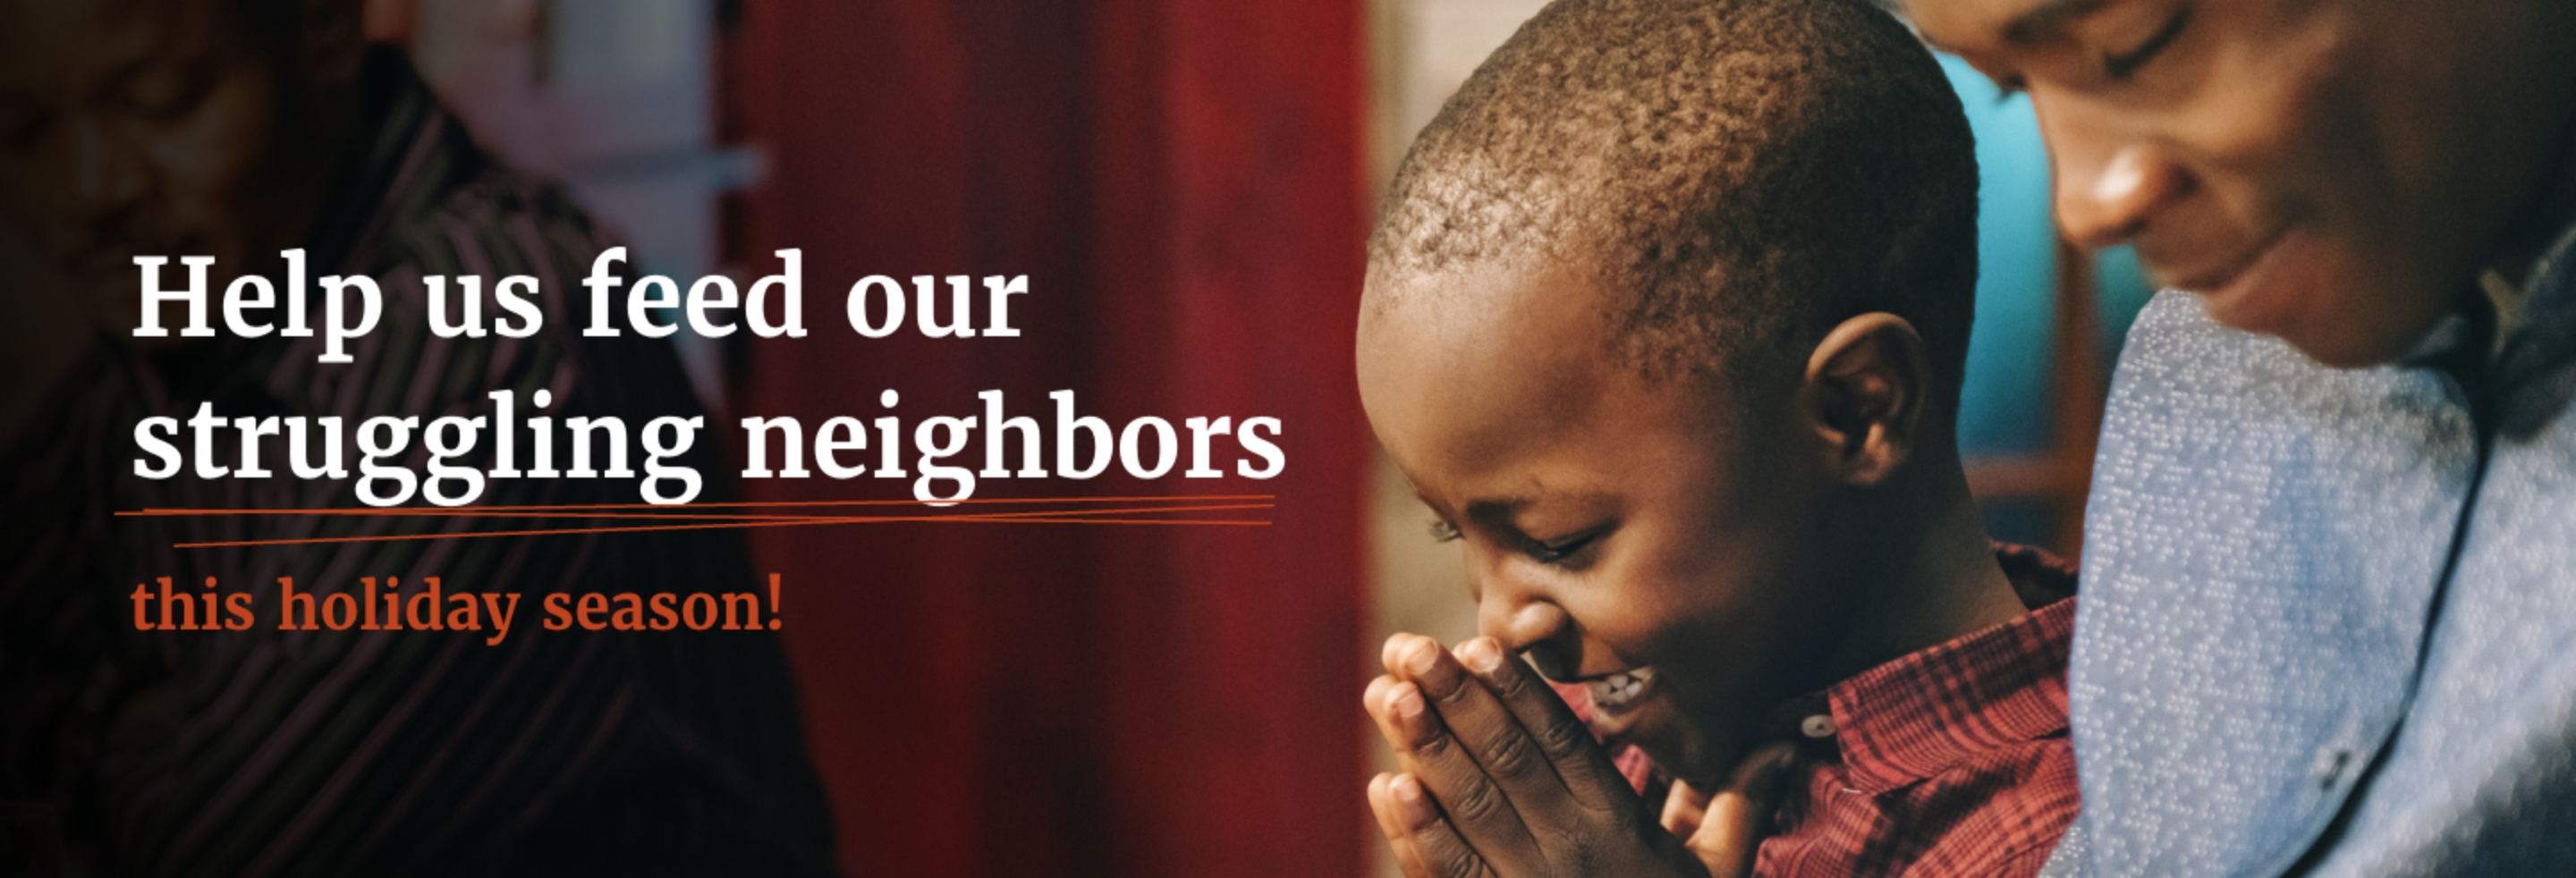 Help us feed our struggling neighbors this holiday season!